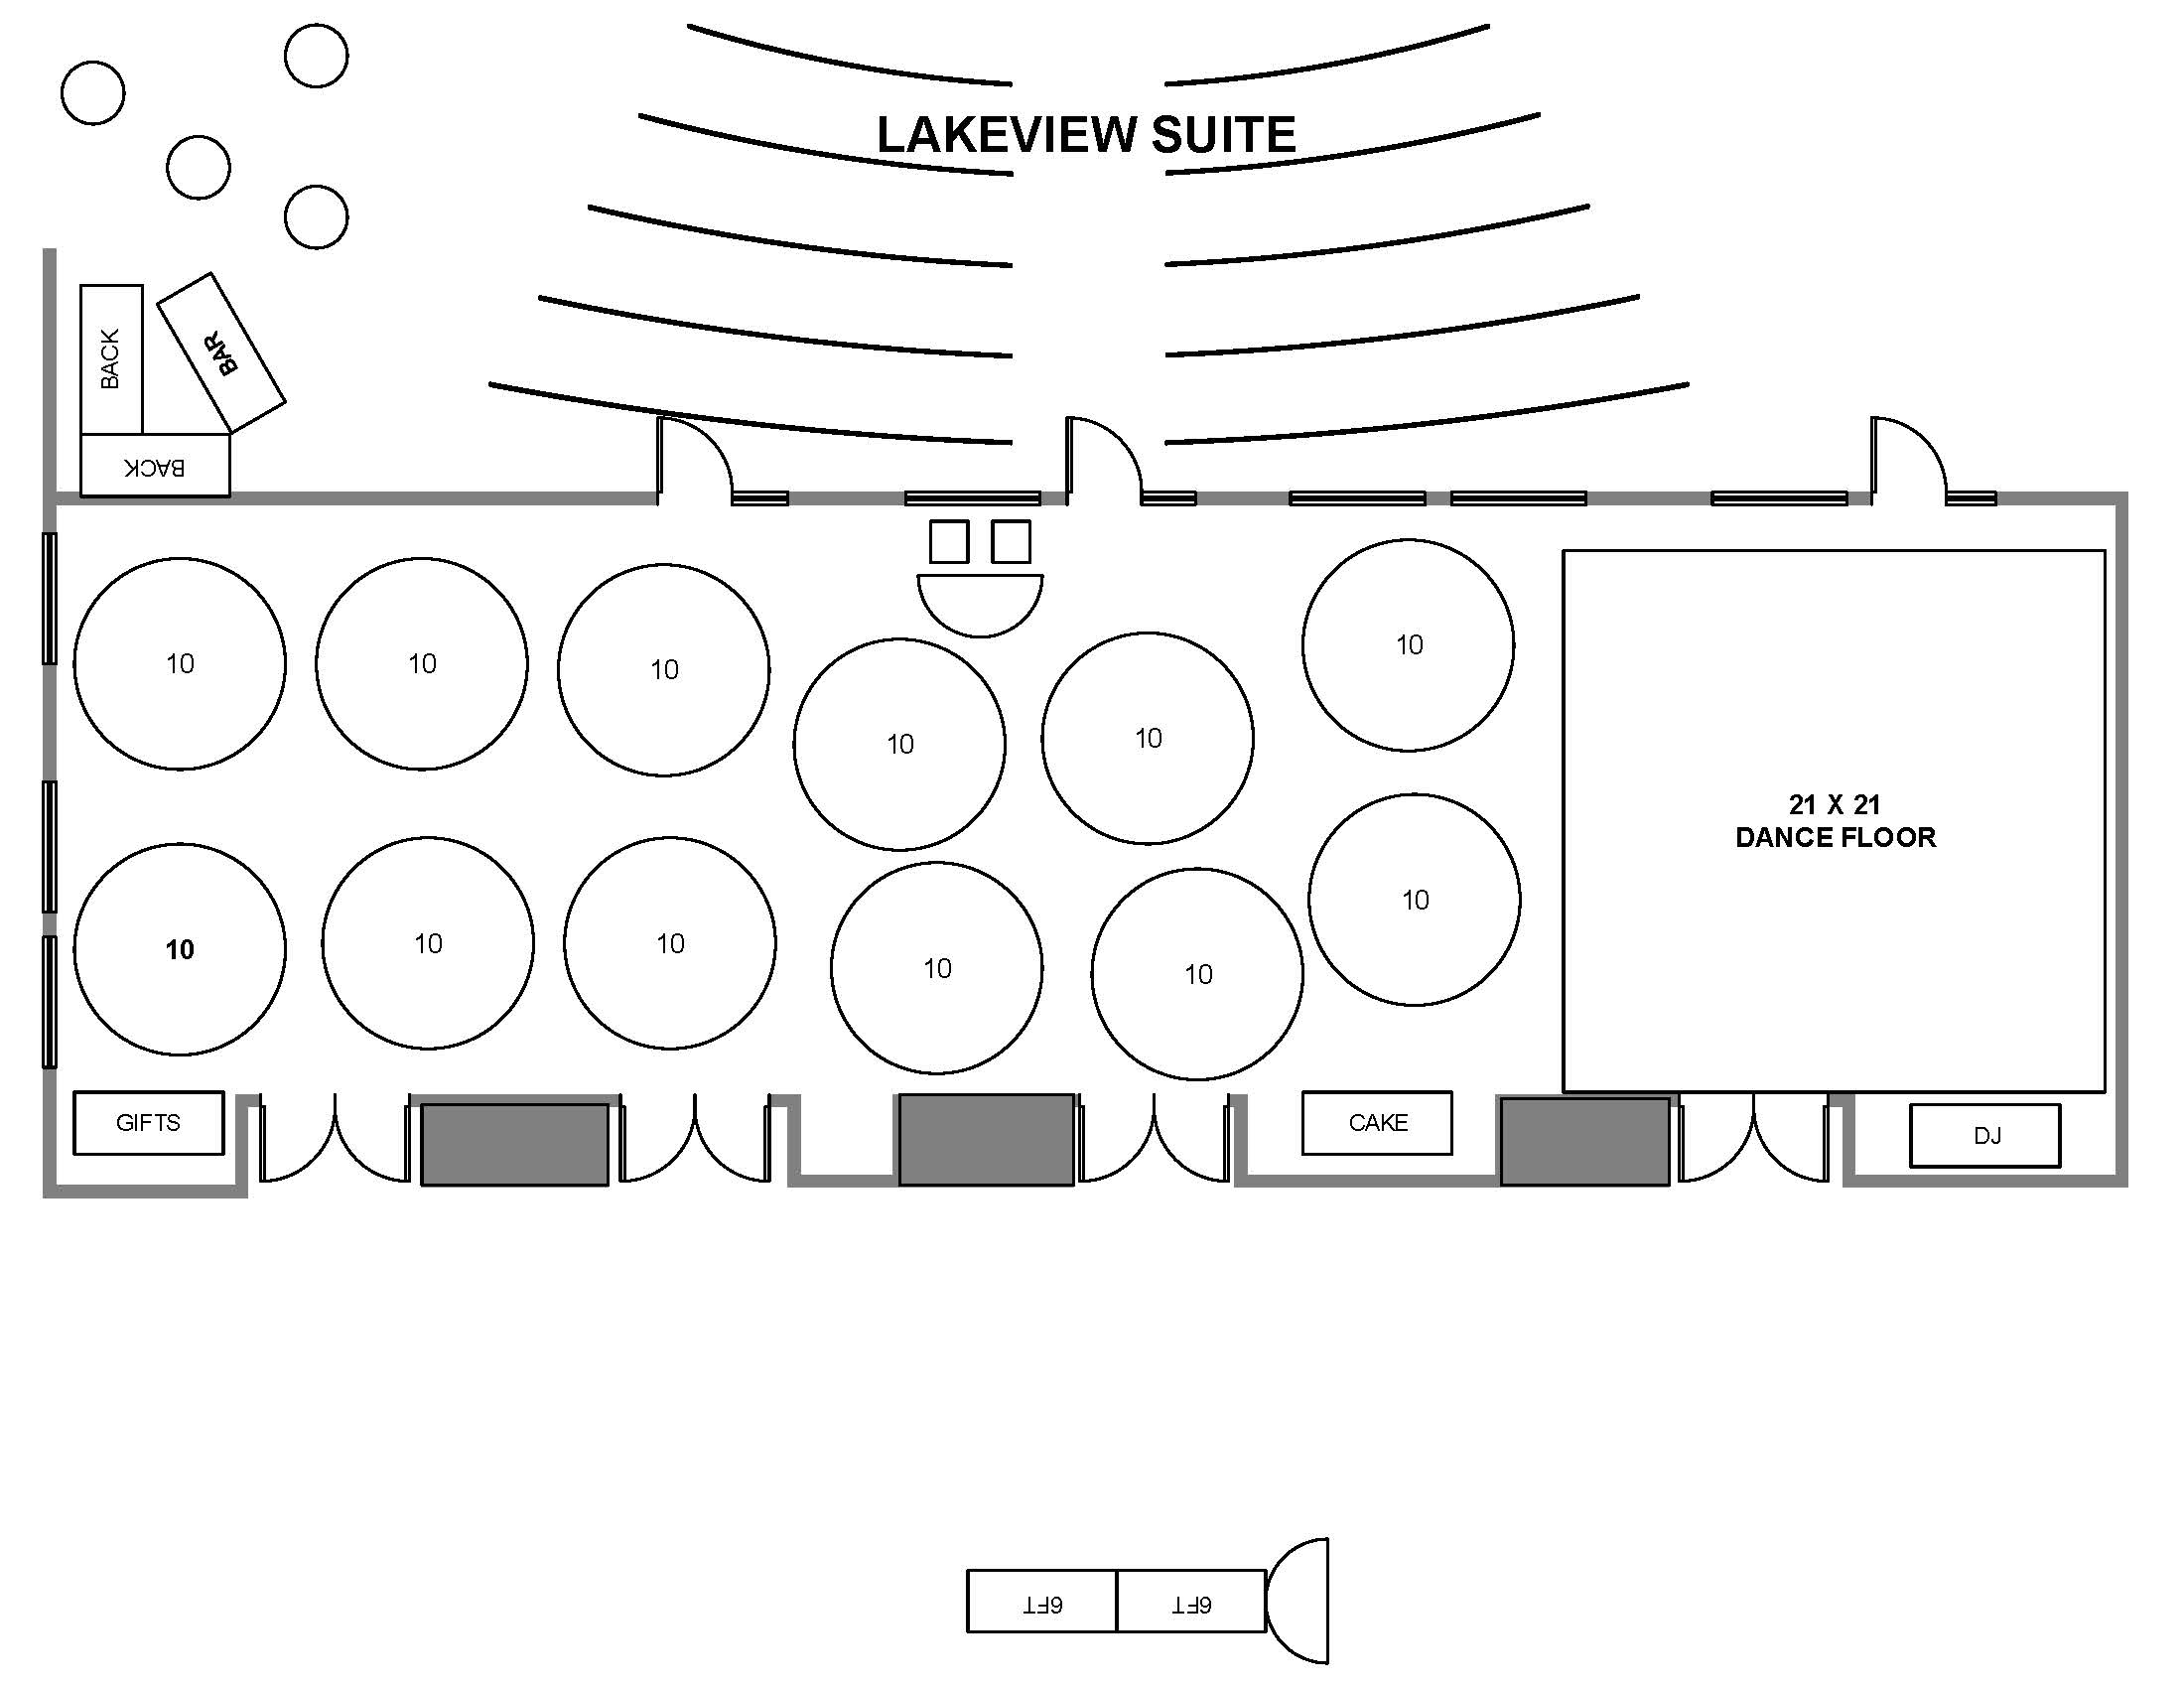 Lakeview Suite layout example